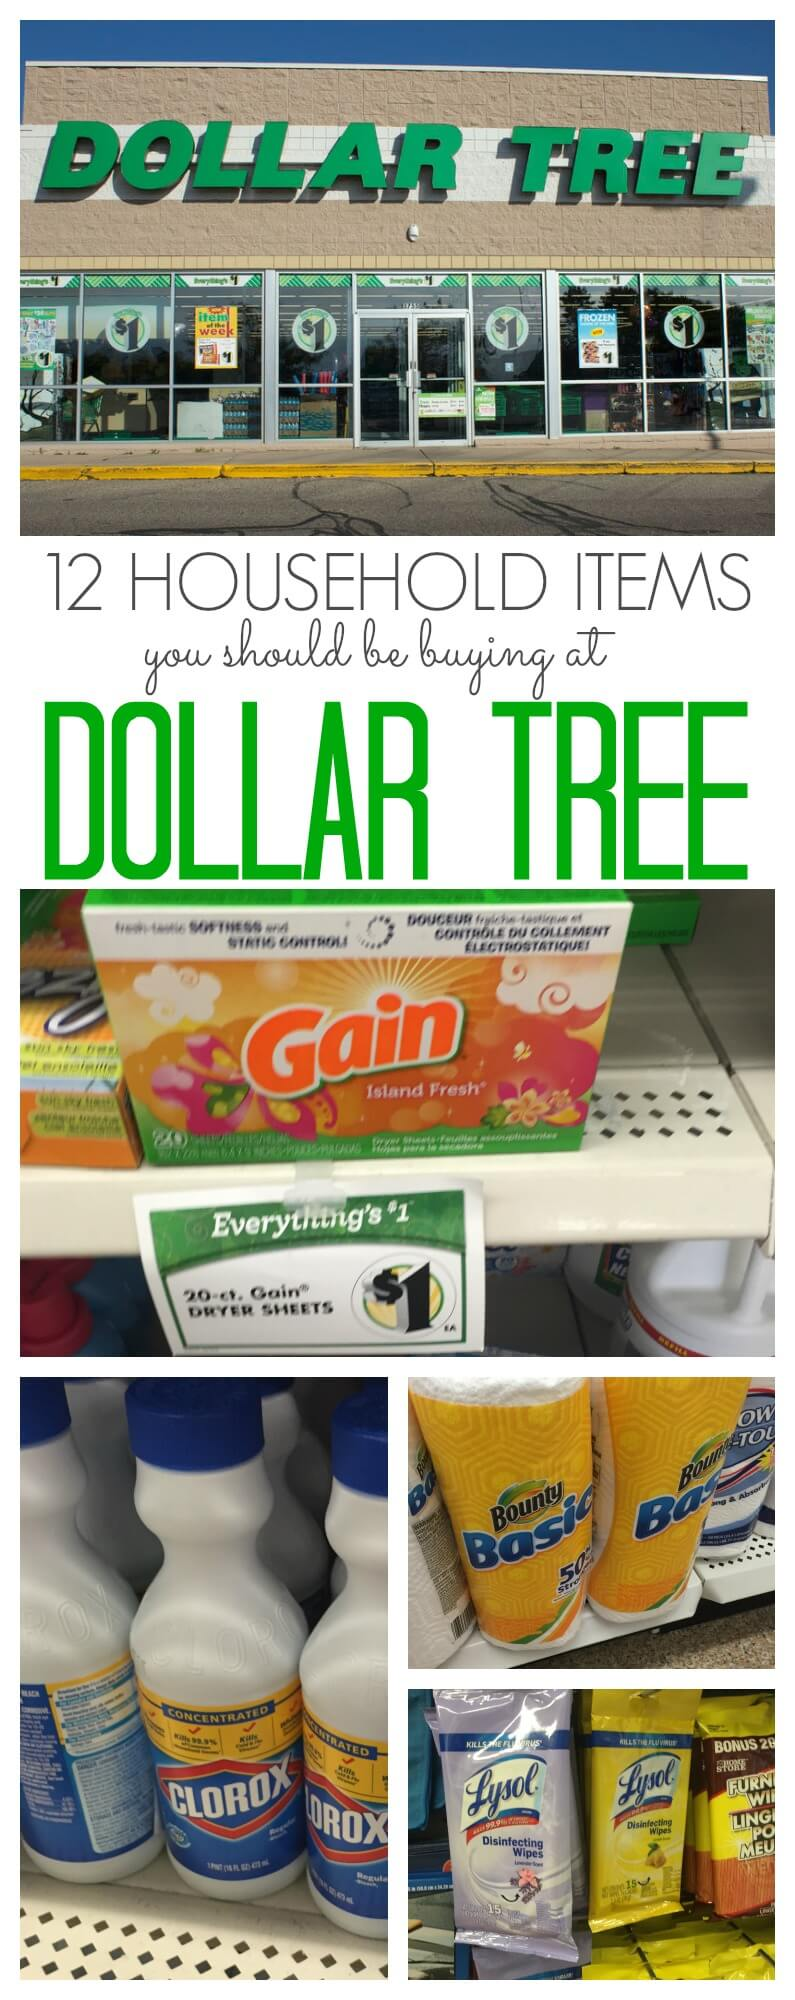 12 Household Items You Should Buy at Dollar Tree